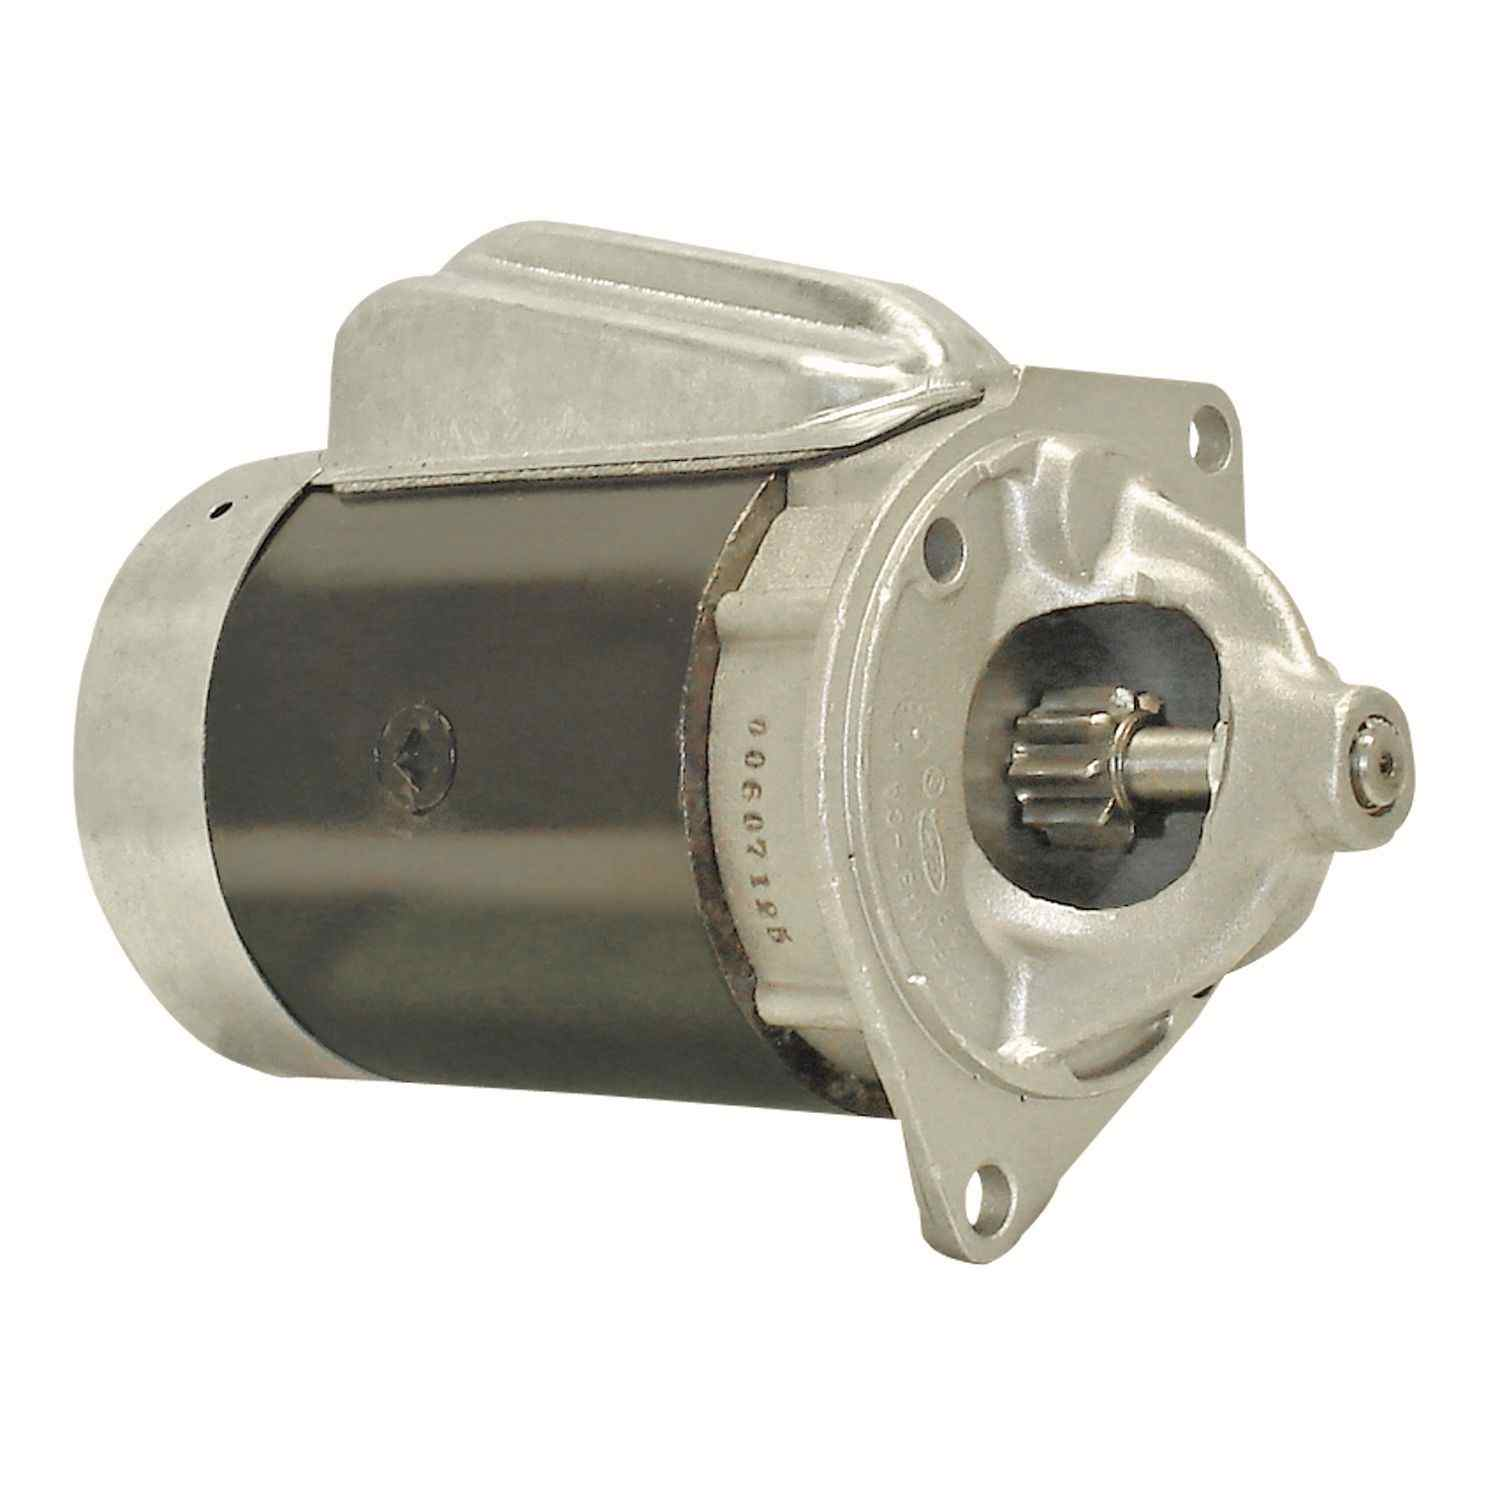 ACDELCO GOLD/PROFESSIONAL - Reman Starter Motor - DCC 336-1004